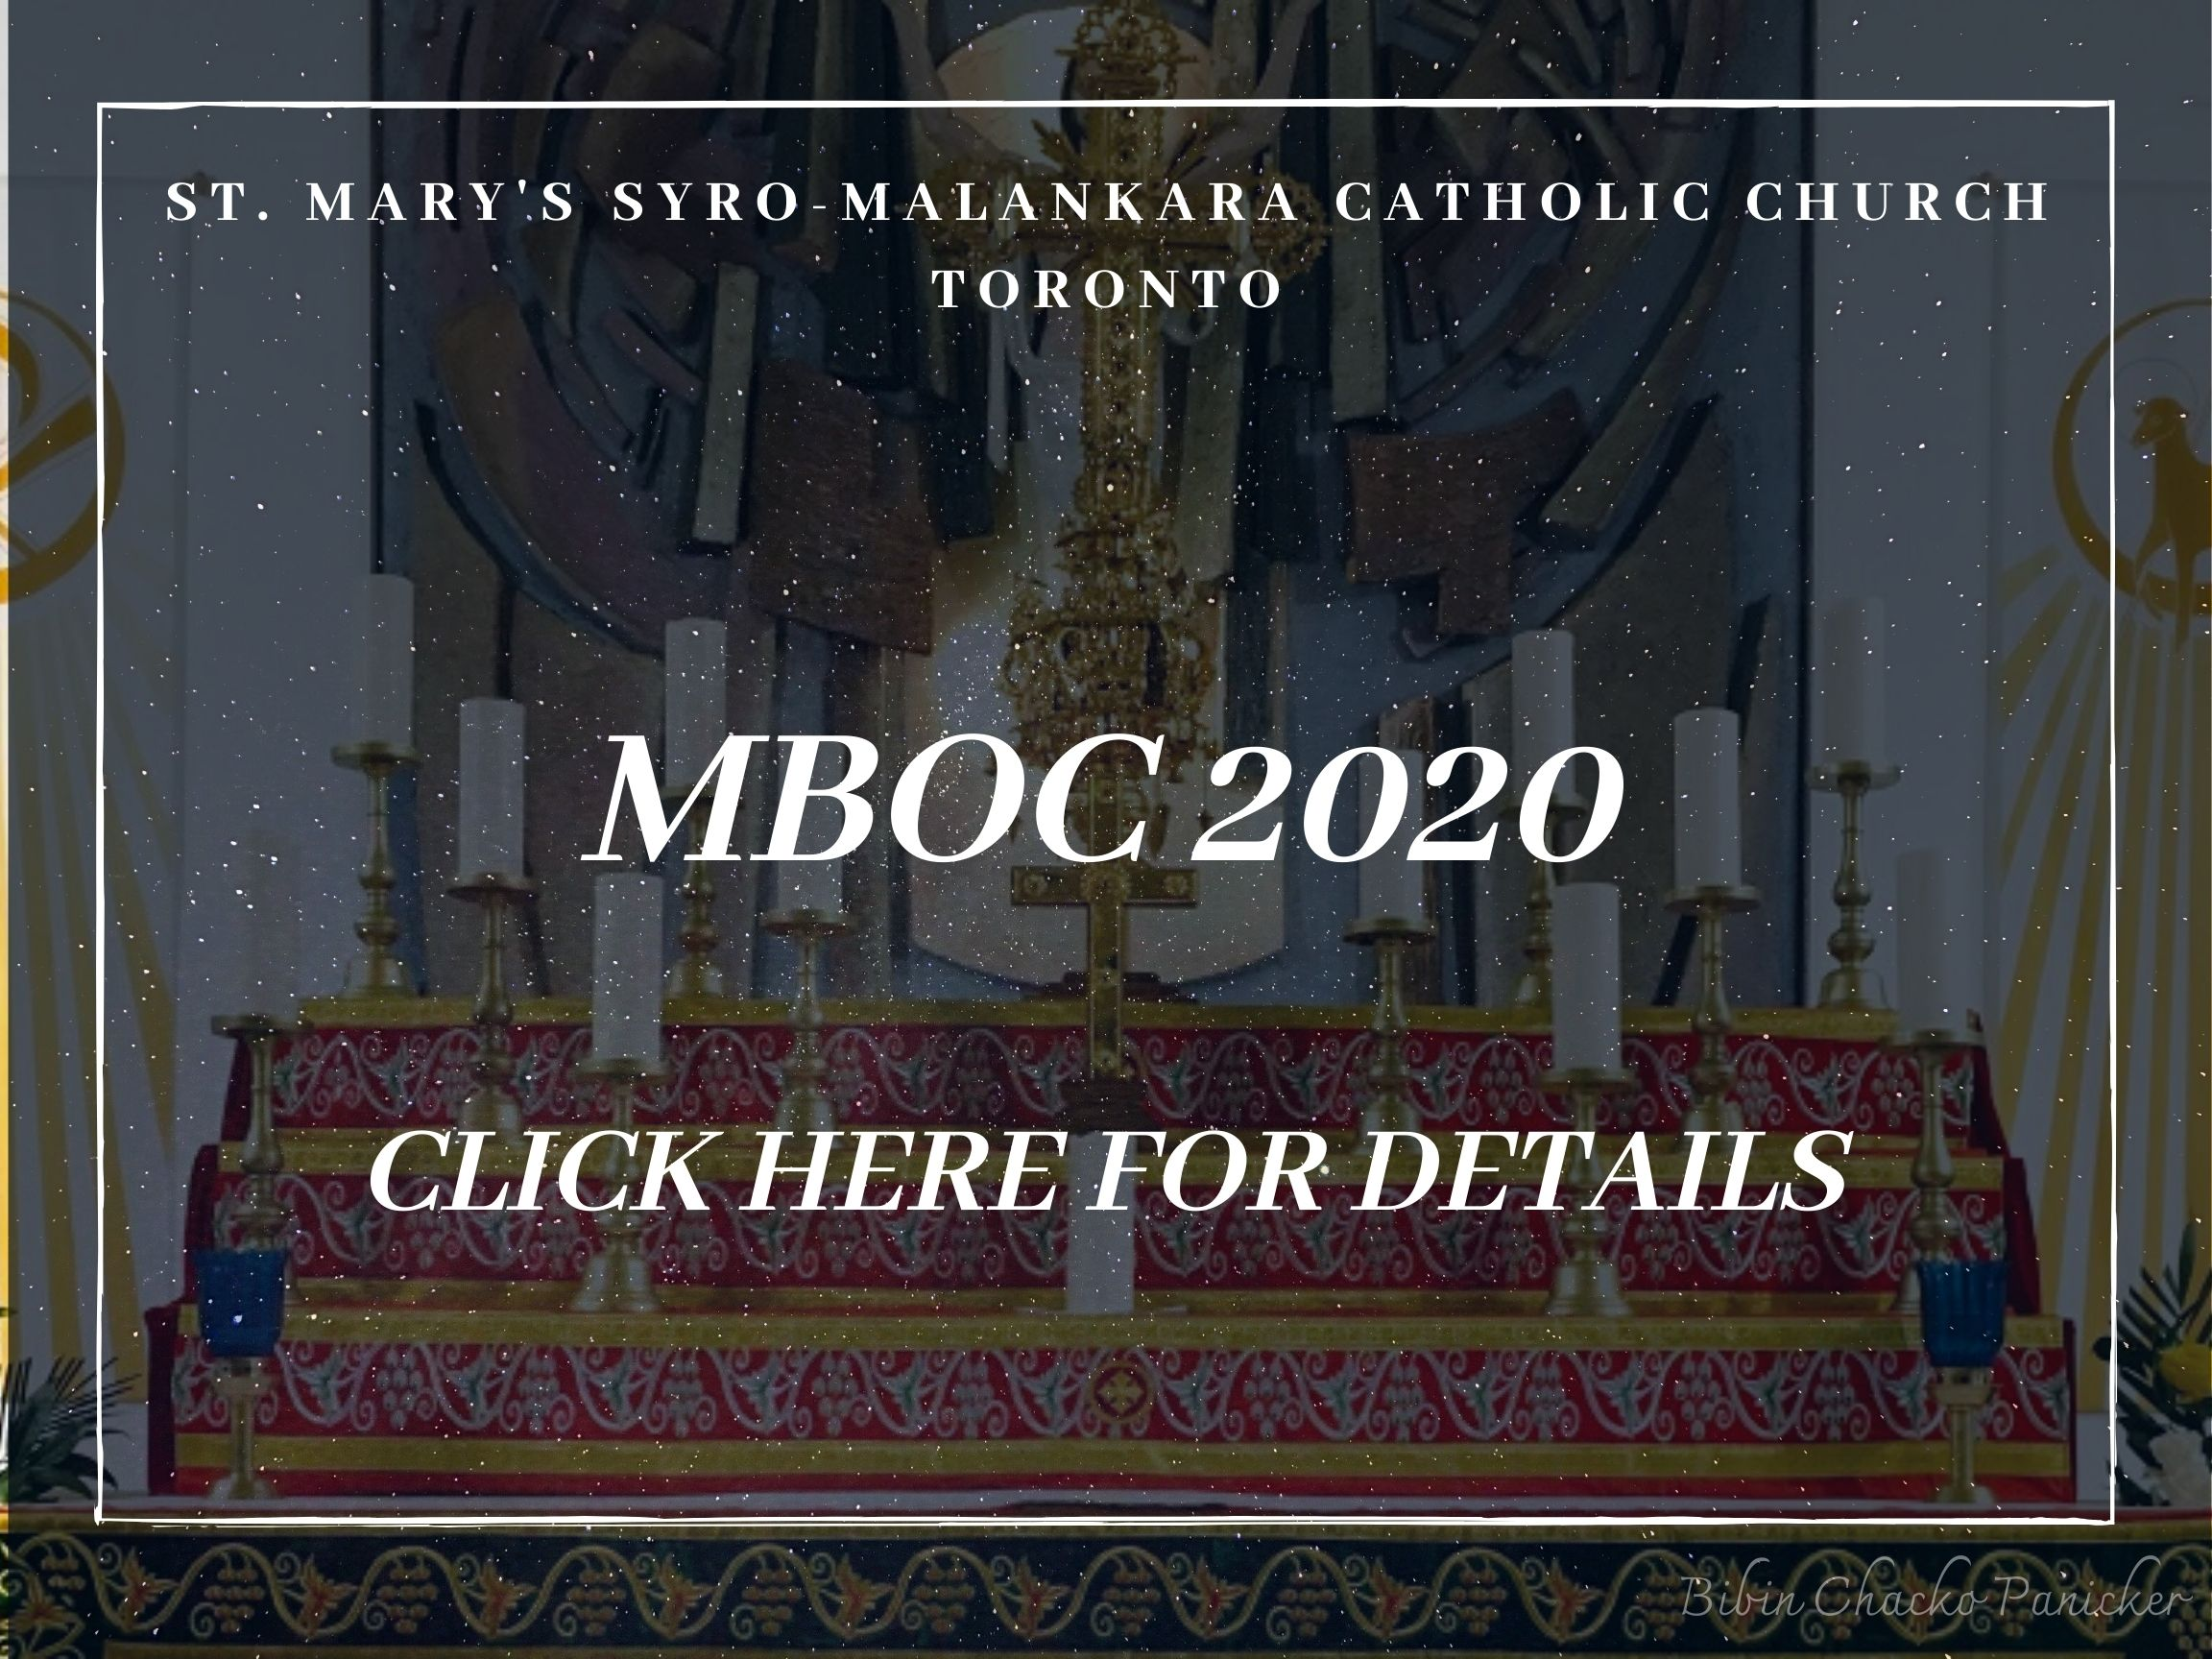 MBOC 2020- St Marys' Syro-Malankara Catholic Church, Toronto